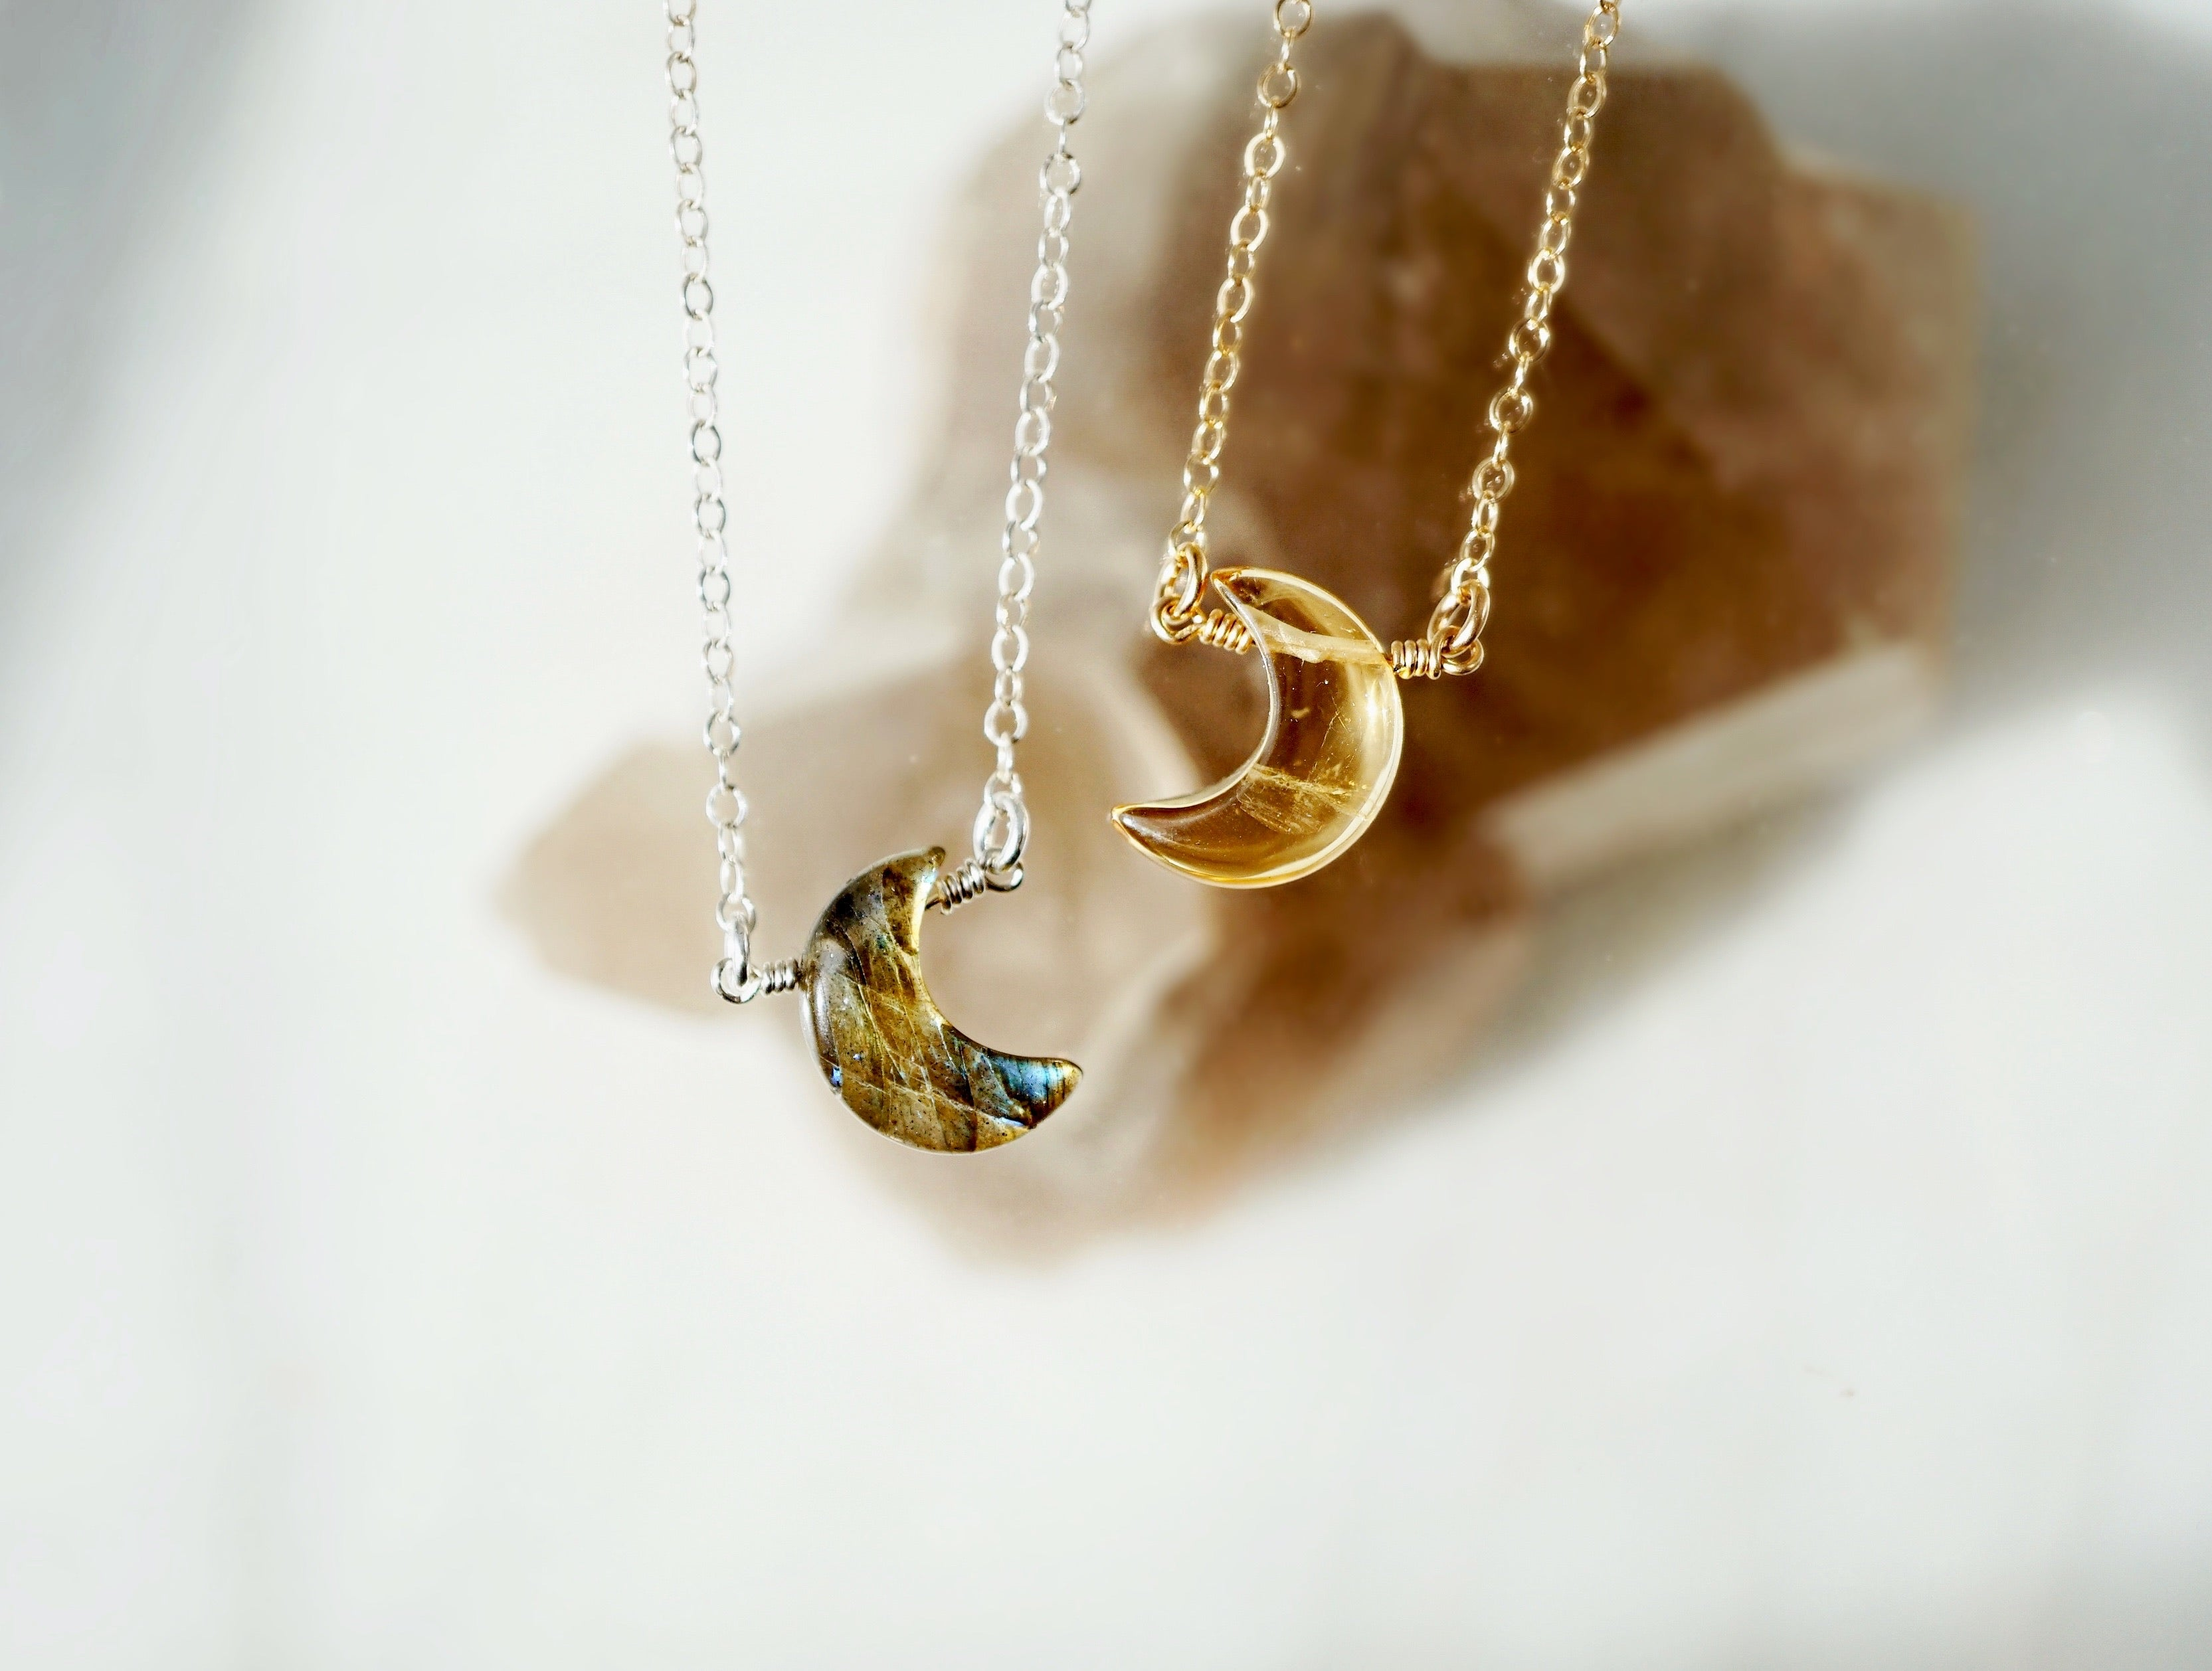 LUNA ✶ Celestial Collection ✶ Dainty CITRINE Crescent Moon Necklace + Lava Charm